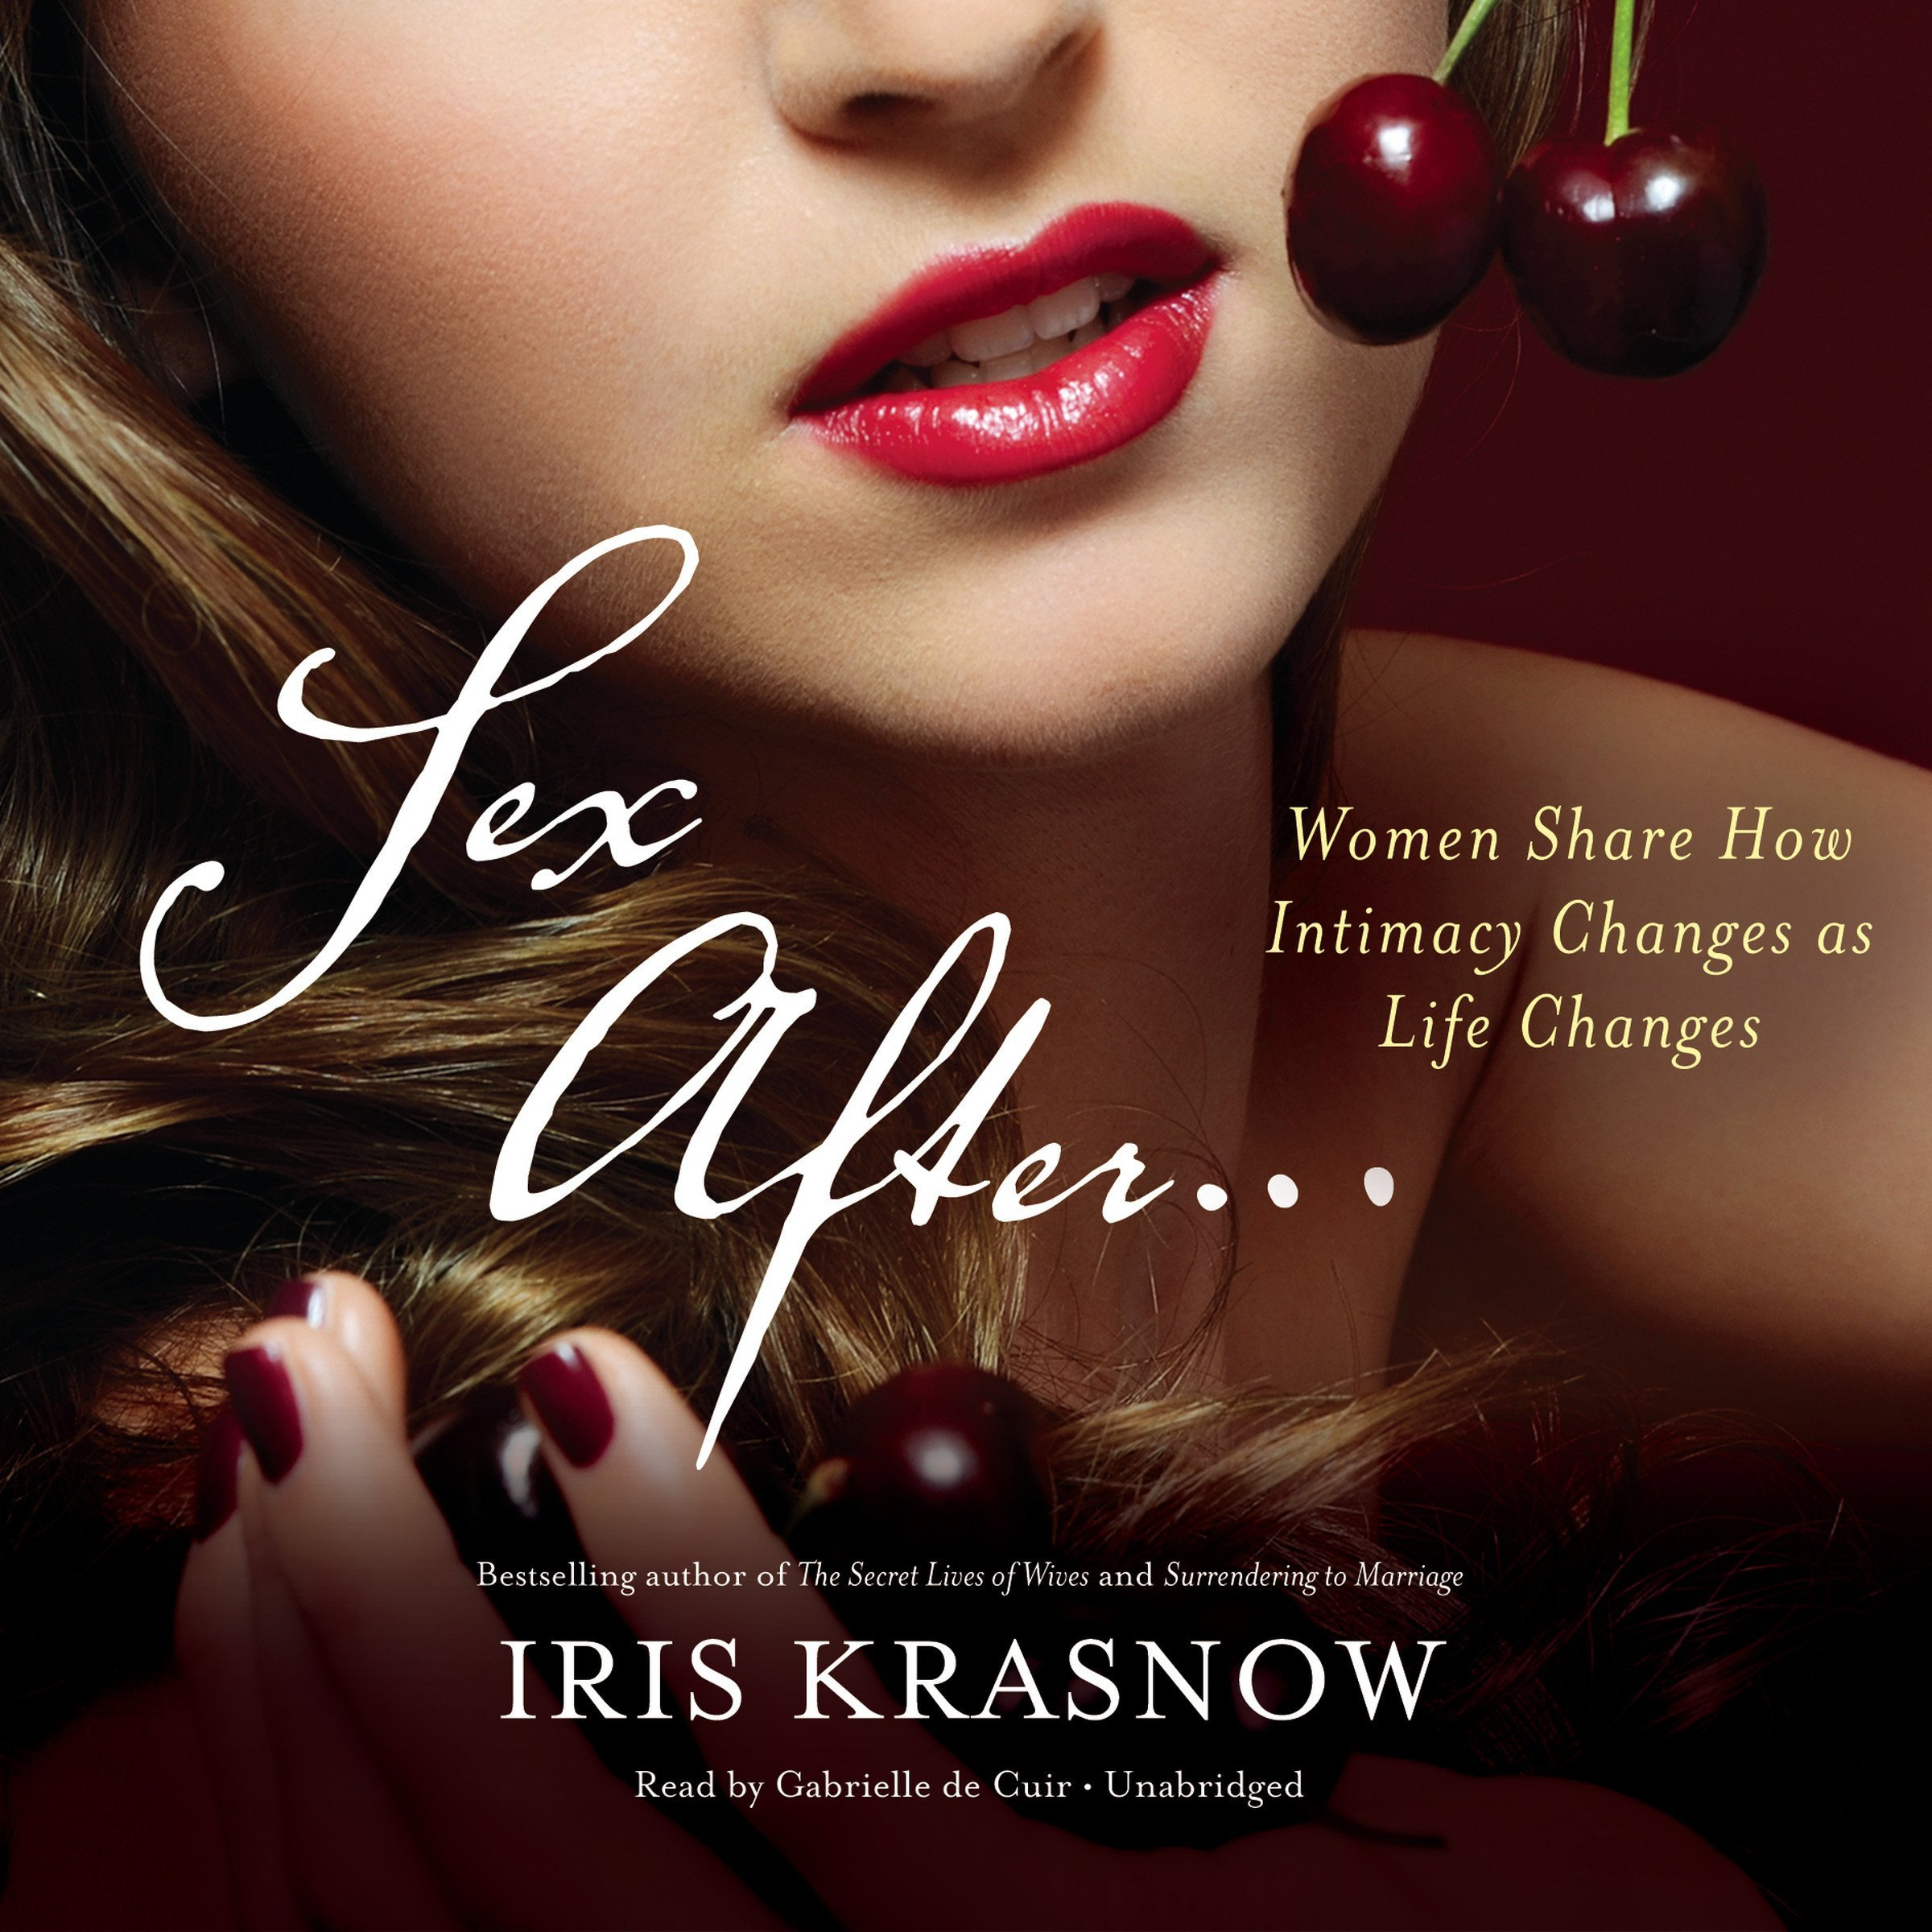 Sex After…: Women Share How Intimacy Changes as Life Changes